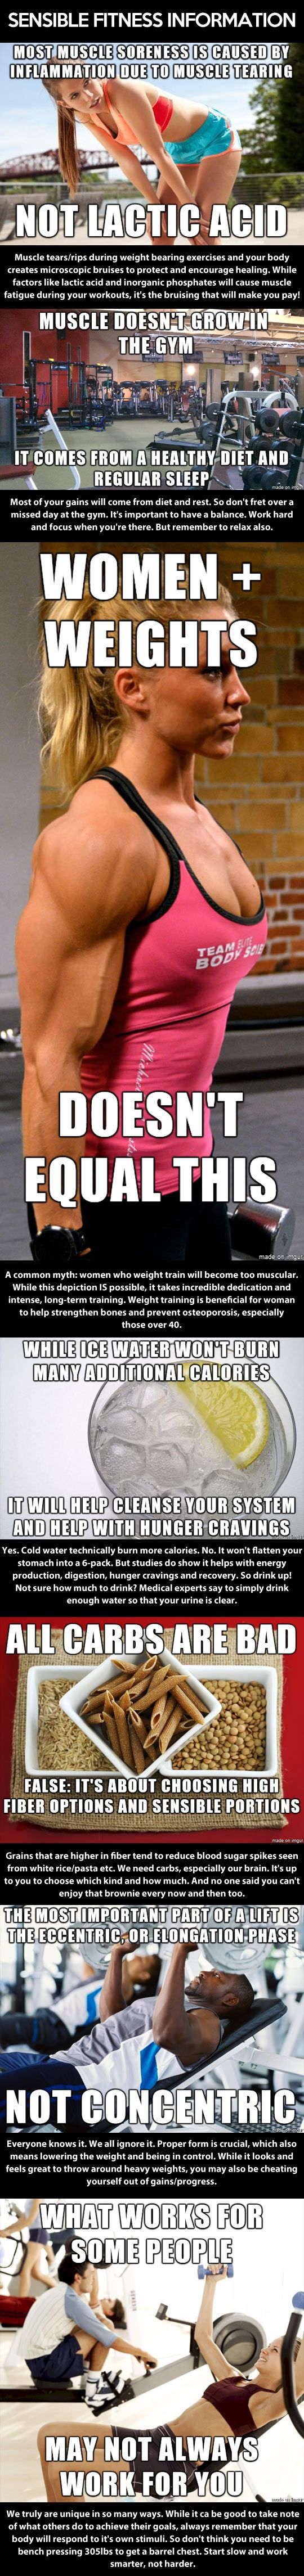 I wish more people knew this stuff. Especially about women and weights. It drives me crazy when women only use the 5 or 10 lb dumbbell for everything.